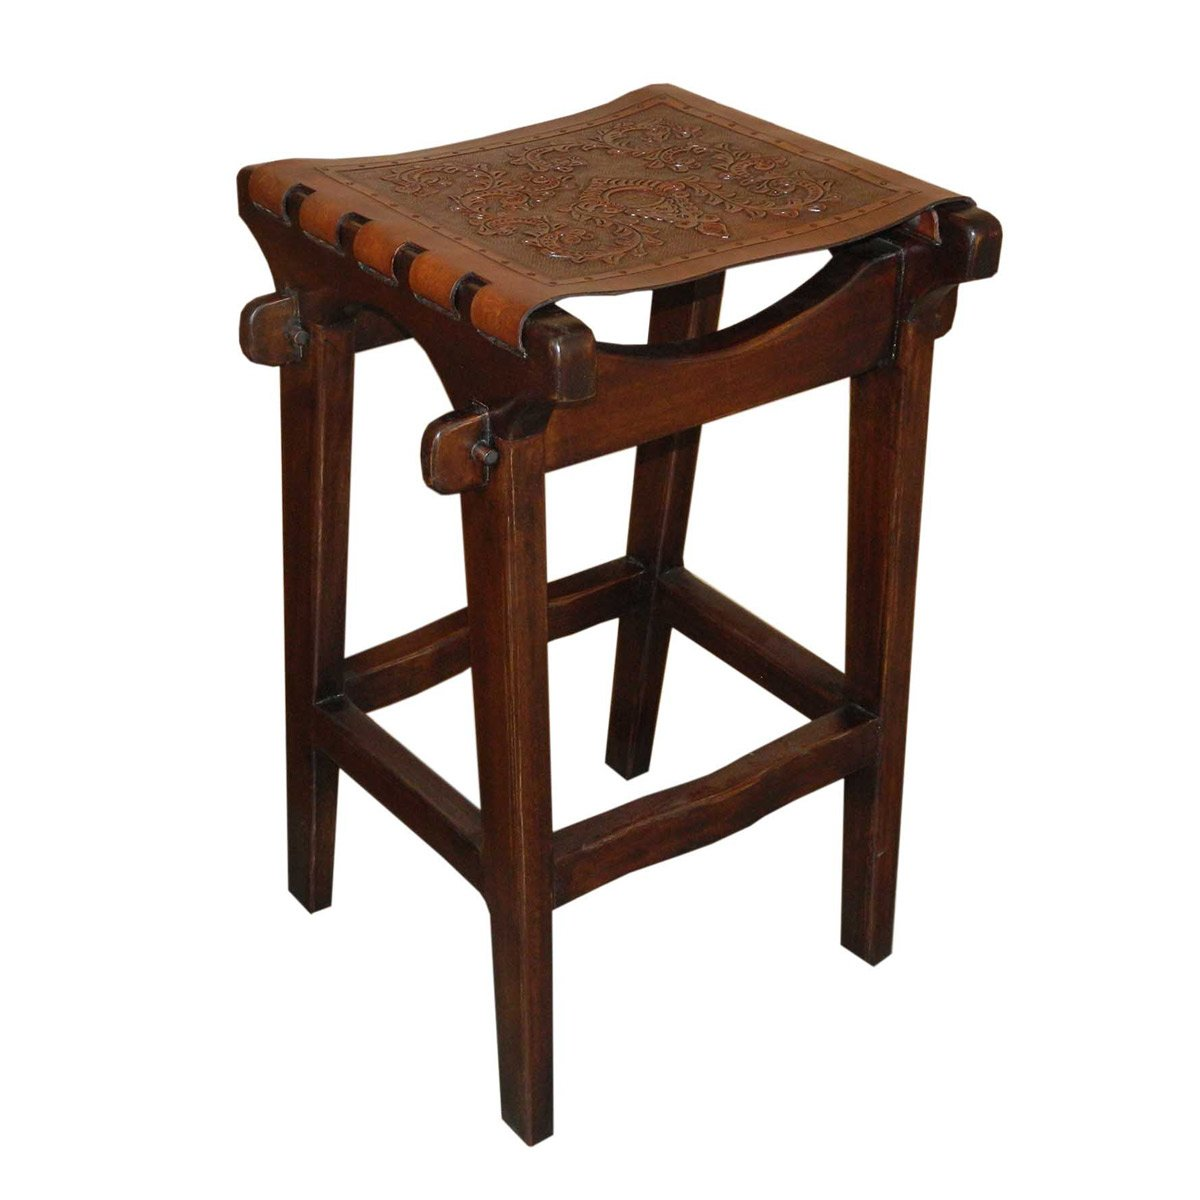 Strange Santa Fe Counter Stool With Colonial Tooled Leather Seat Ocoug Best Dining Table And Chair Ideas Images Ocougorg